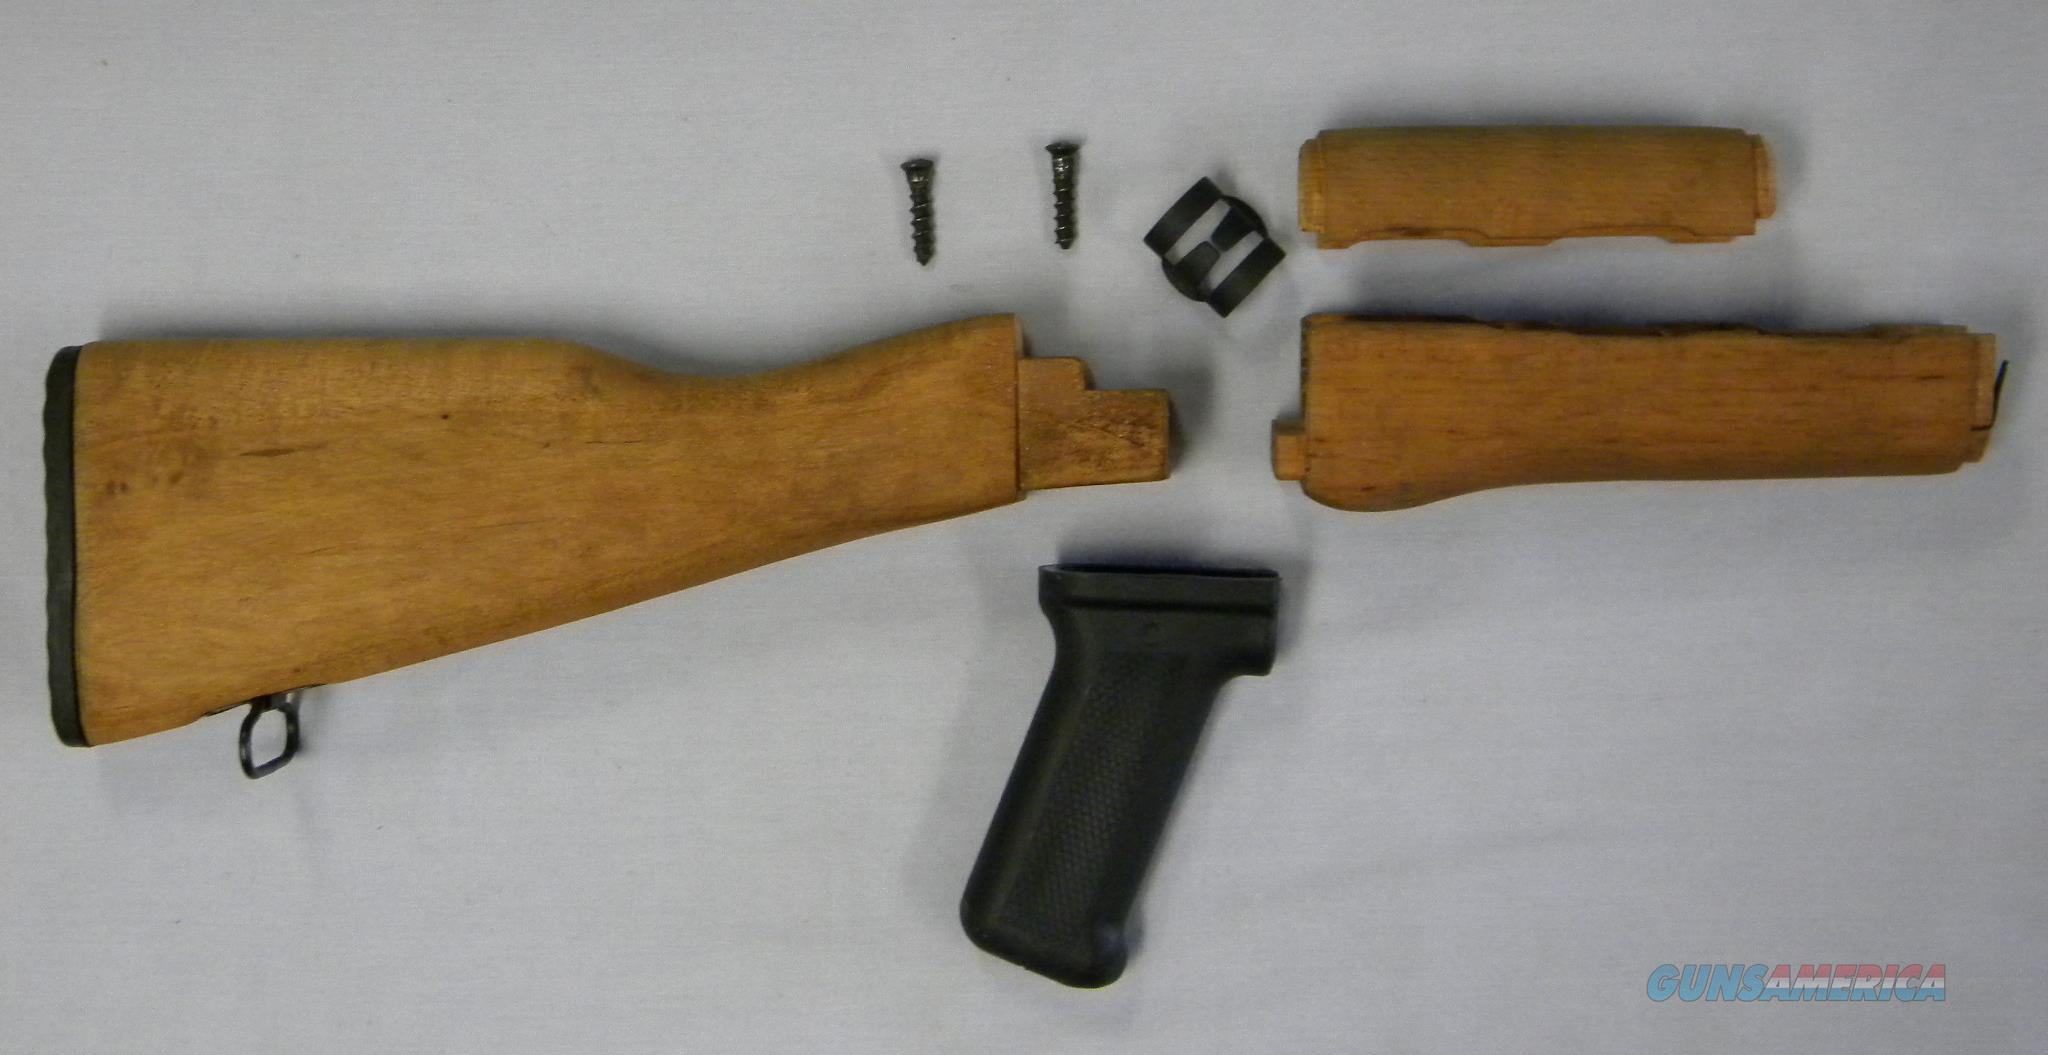 Standard AK-Pattern Stock Sets, Solid Wood, Sanded/Oiled, ''Military New'', Free Shipping!  Non-Guns > Gunstocks, Grips & Wood